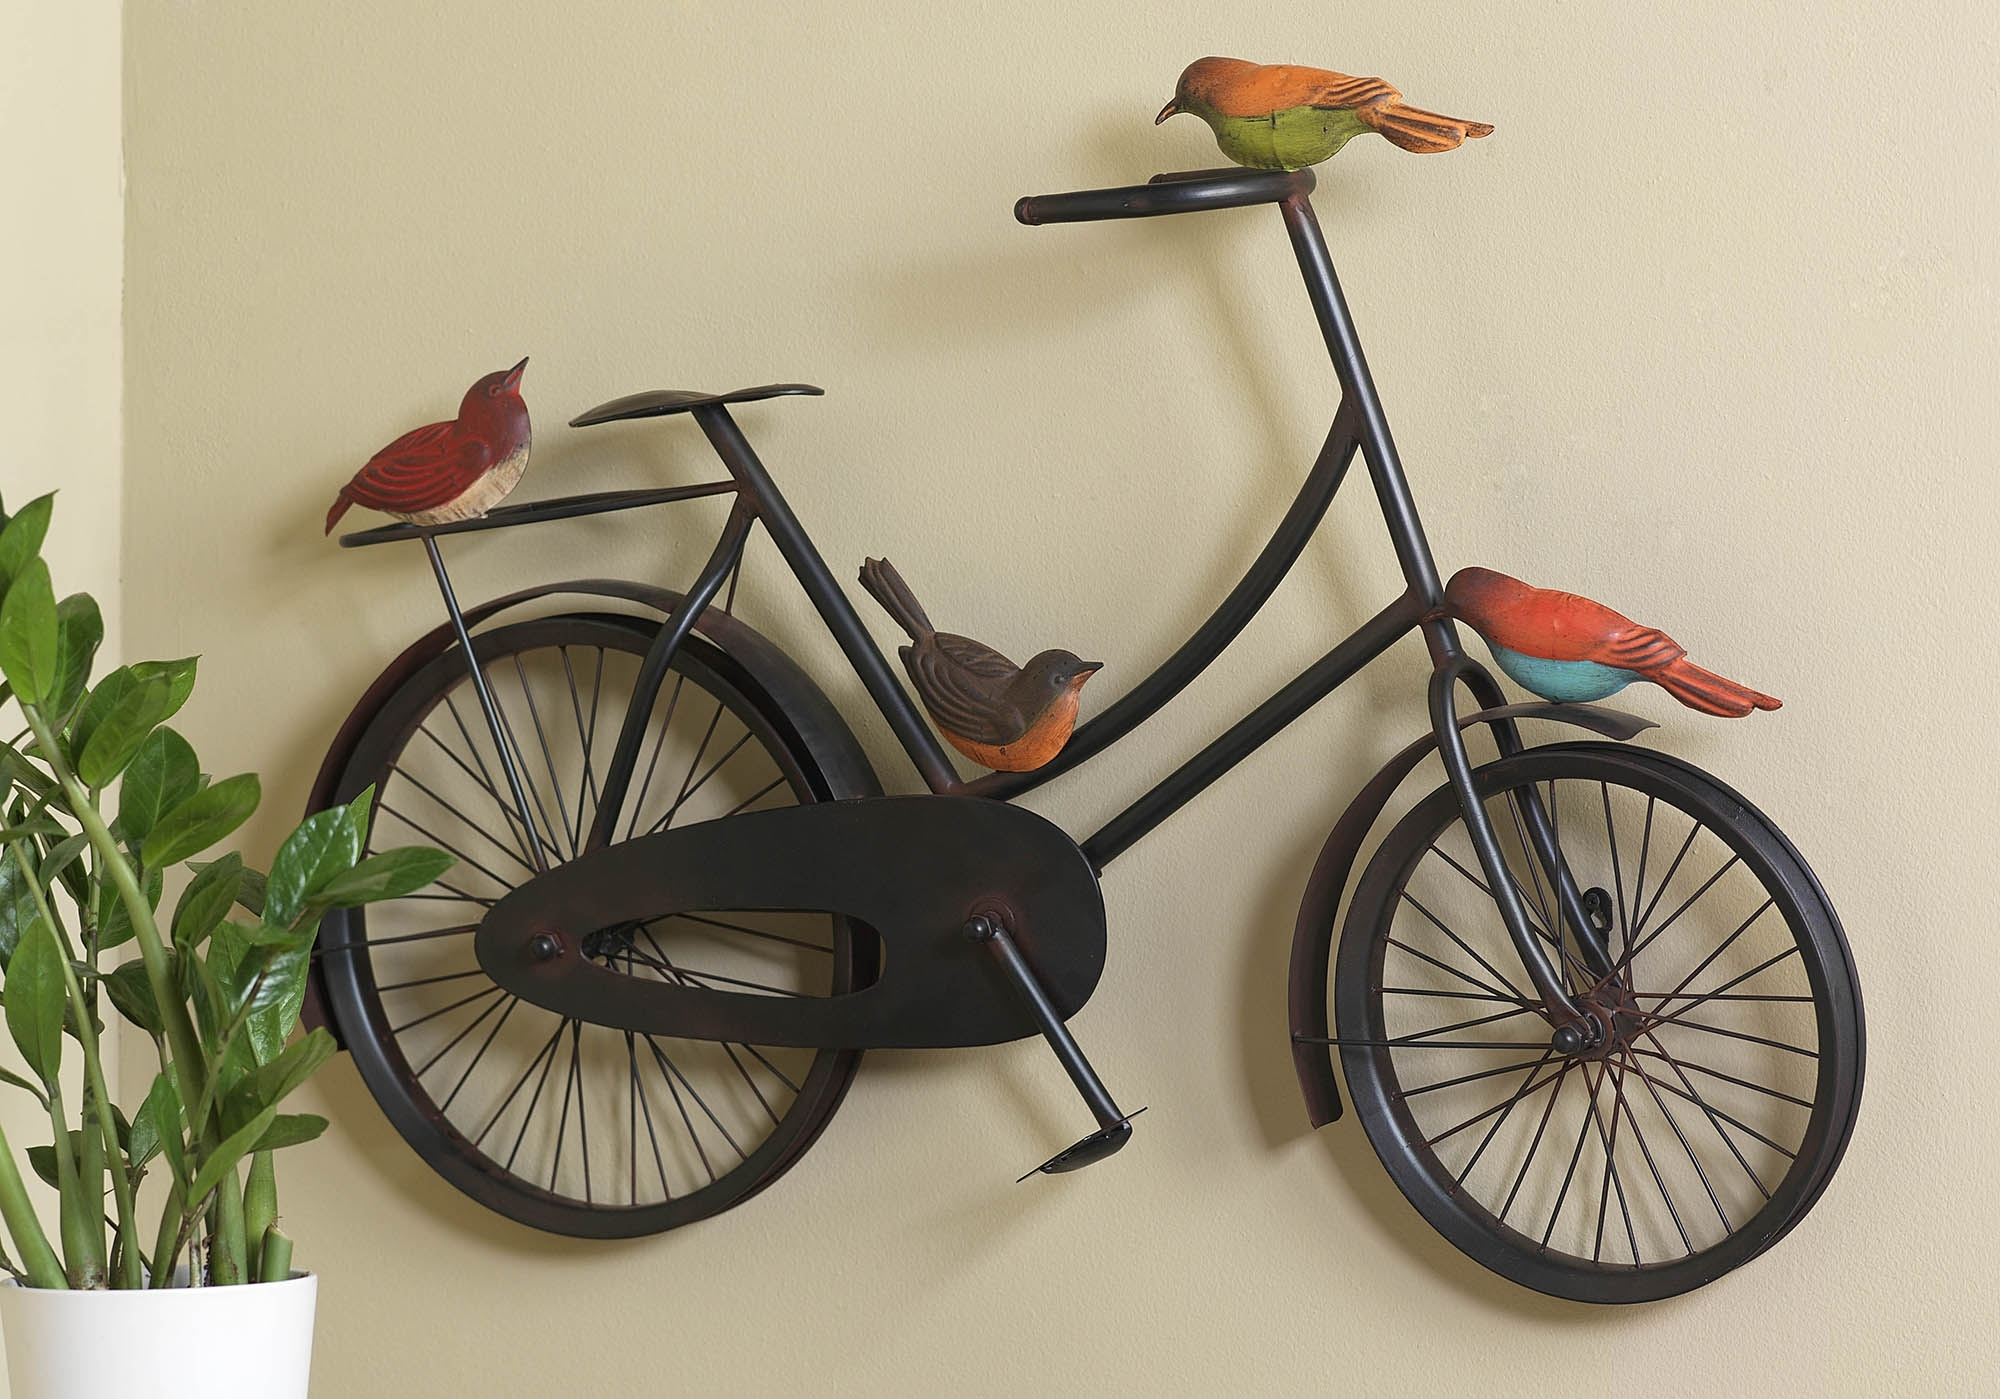 Fashionable Bicycle Wall Art Decor Within Glamorous 50+ Bicycle Wall Decor Inspiration Of Best 25+ Vintage (View 5 of 15)